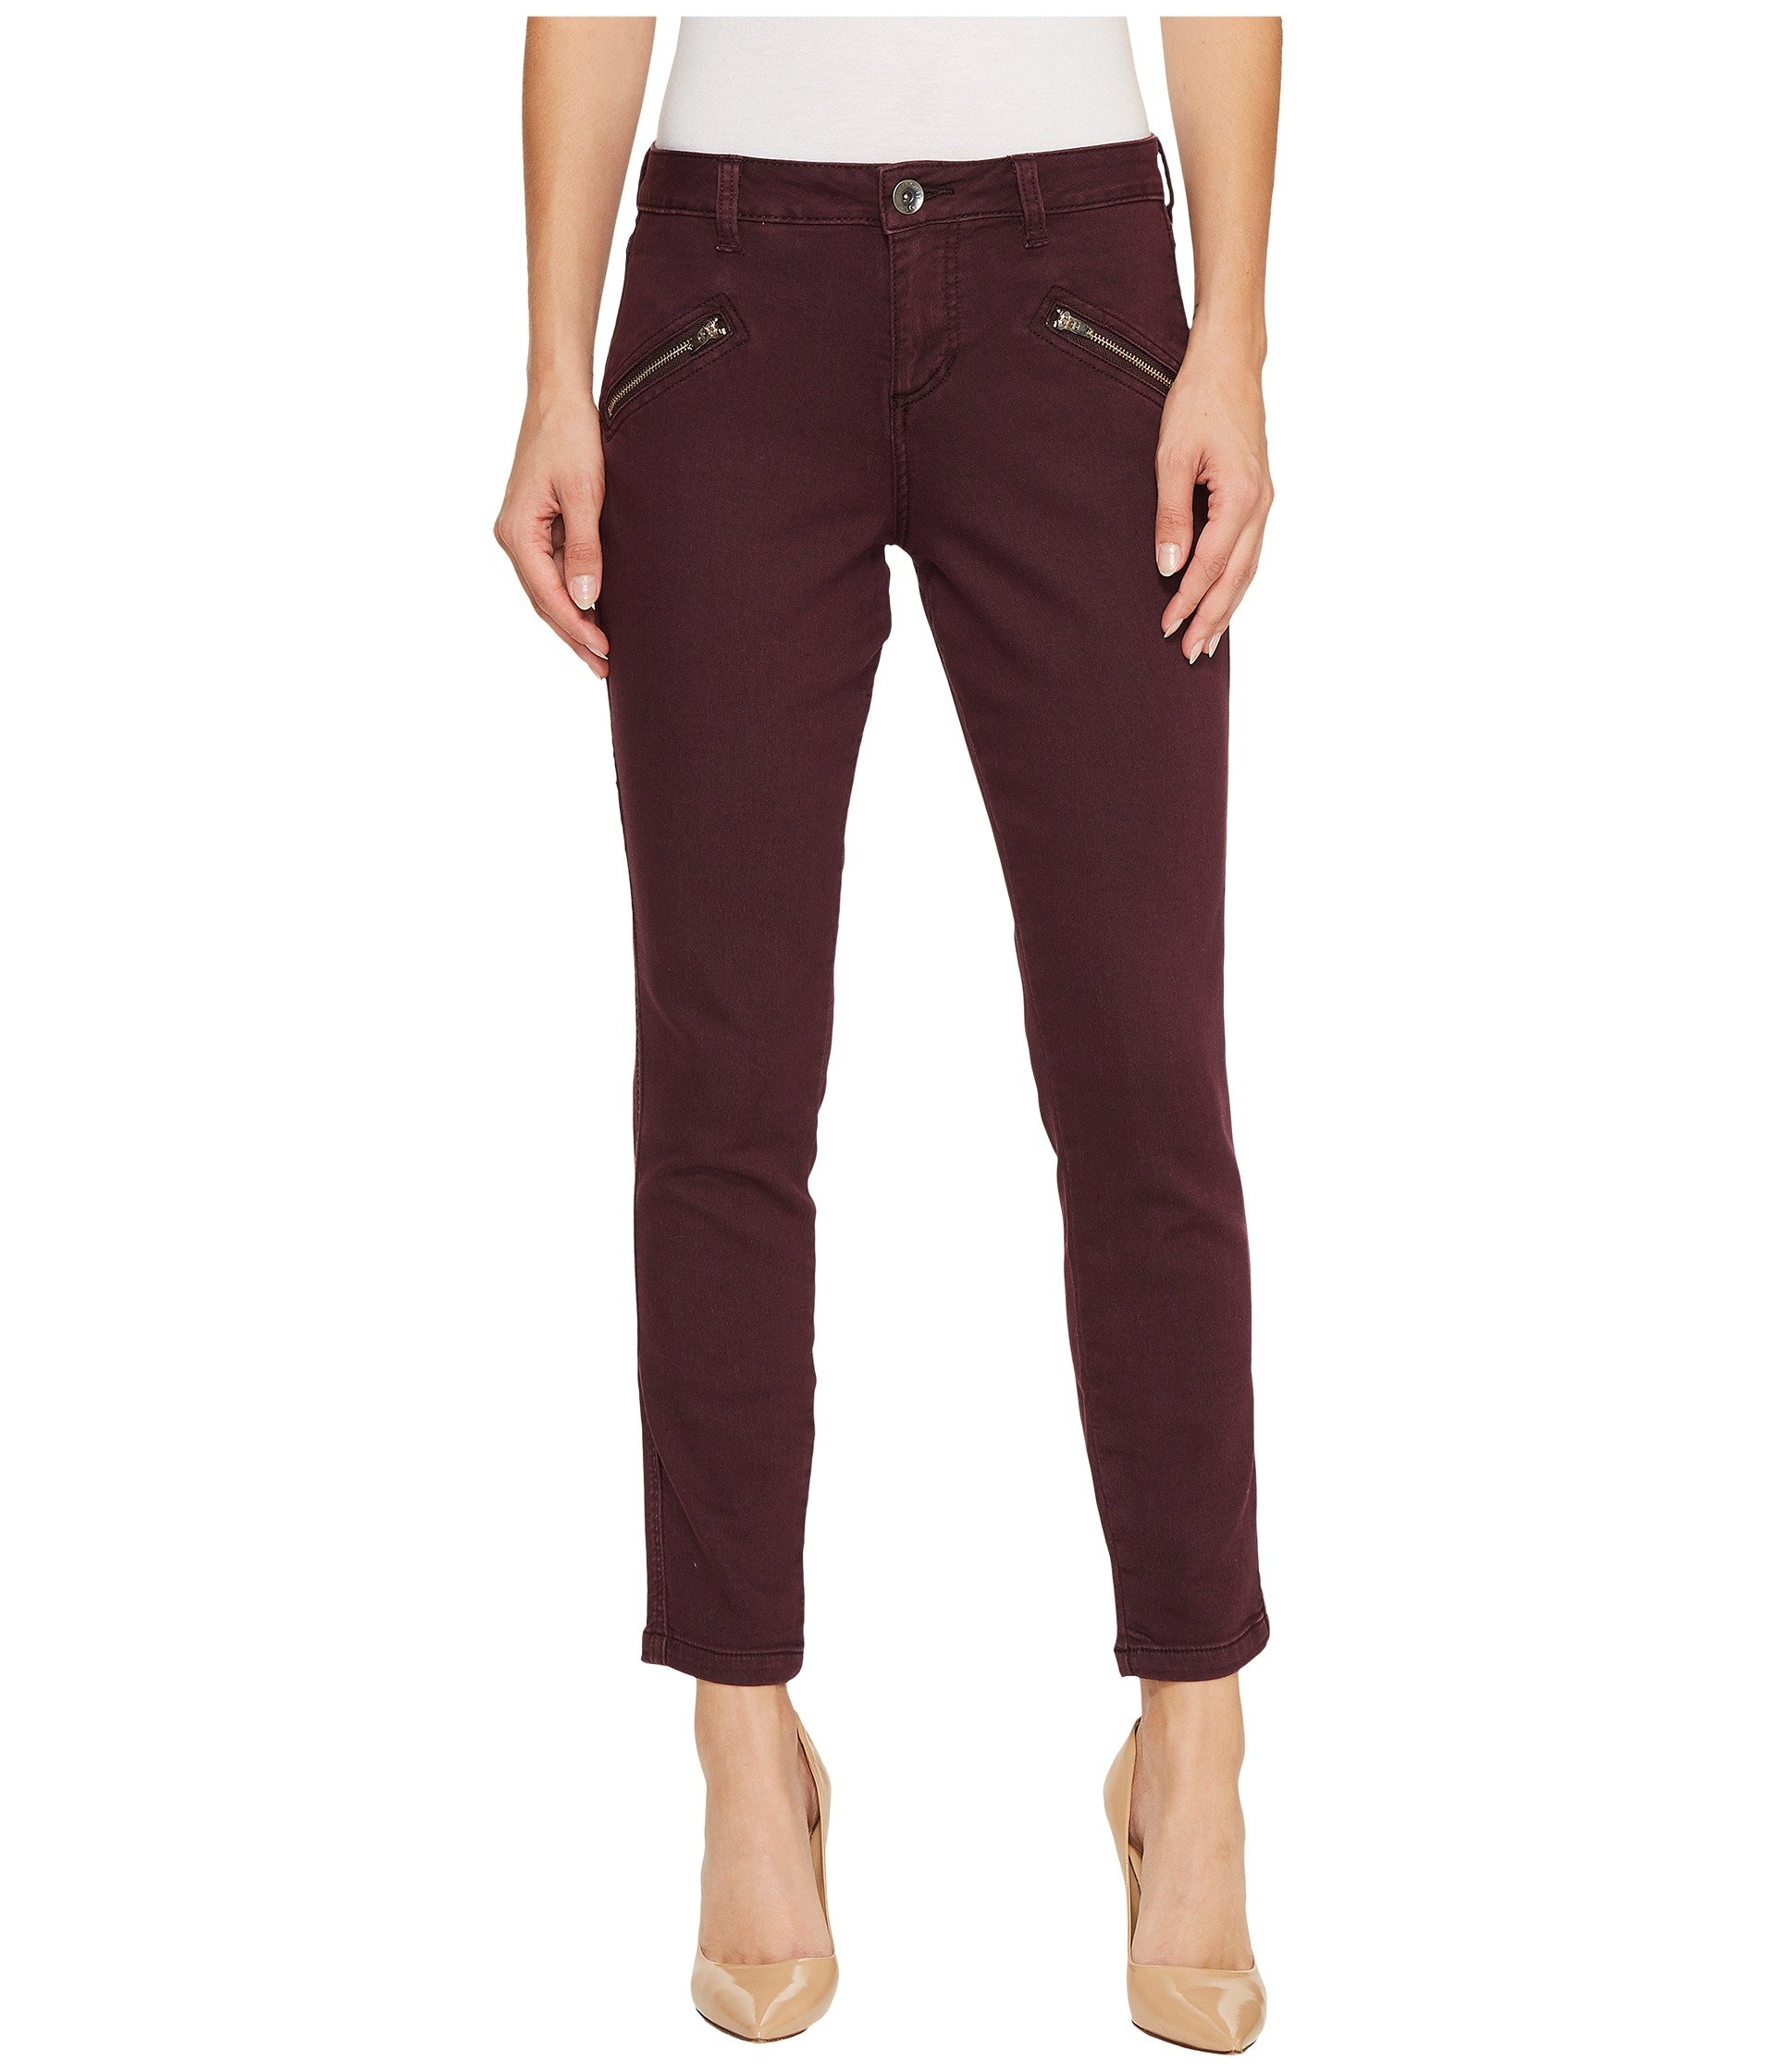 Calvin Klein Jeans Plum Women's Ultimate Skinny Power Stretch Corduroy Pant 10x by Calvin Klein Jeans. $ $ 28 98 Prime. FREE Shipping on eligible orders. Jag Jeans Women's Petite Nora Pull on Skinny in Comfort Denim. by Jag Jeans. $ - $ $ 22 $ 84 00 Prime.